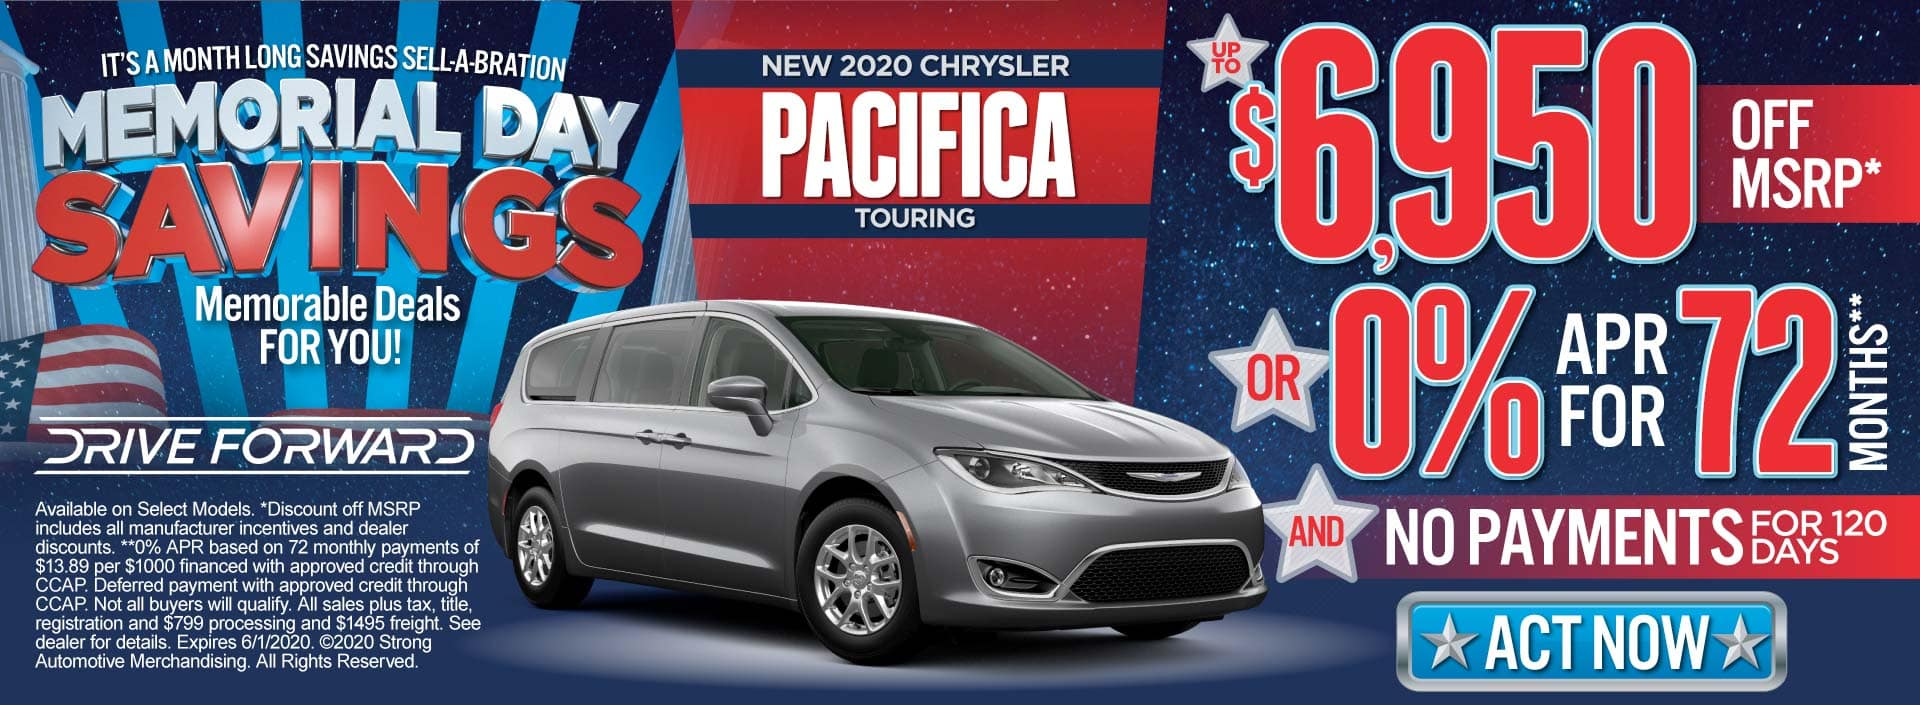 New 2020 Chrysler Pacifica up to $6950 Off MSRP or 0% APR for 72 months & No Payments for 120 Days. ACT NOW